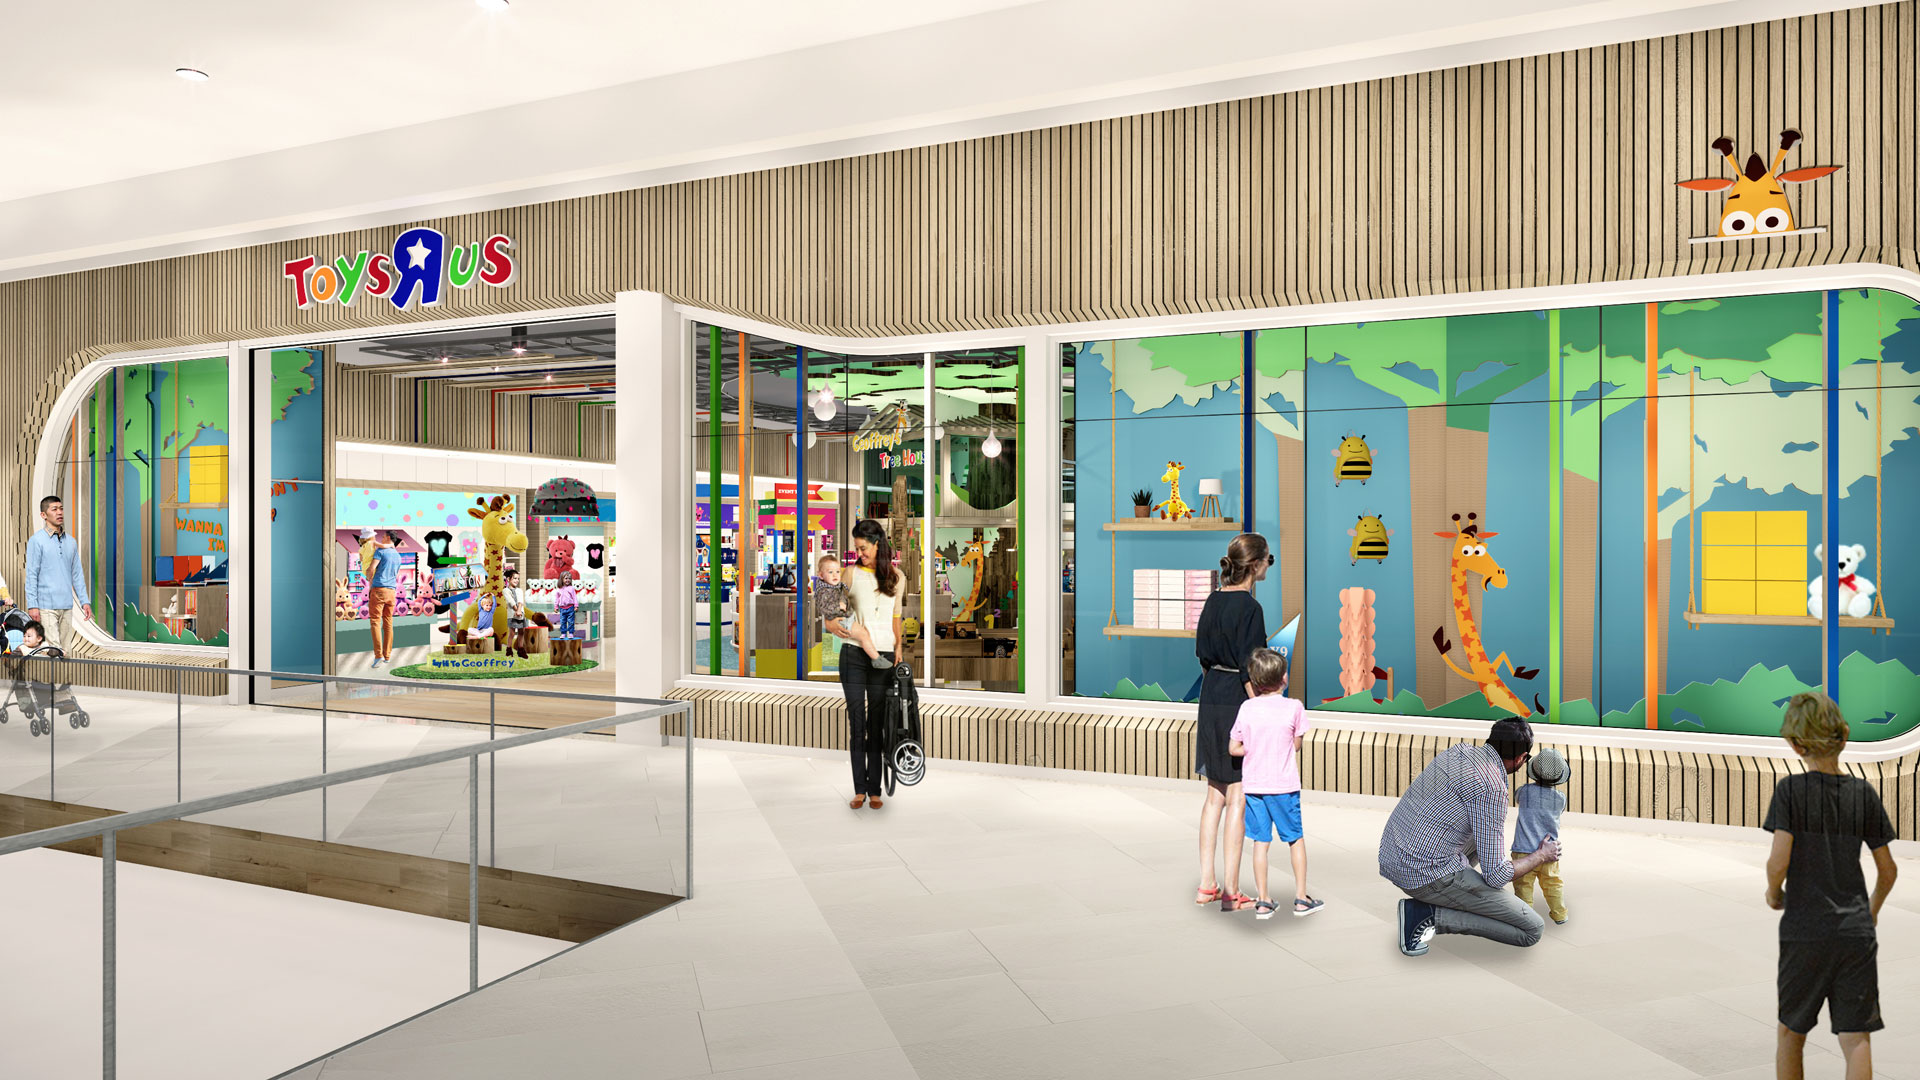 new-toys-r-us-store-front